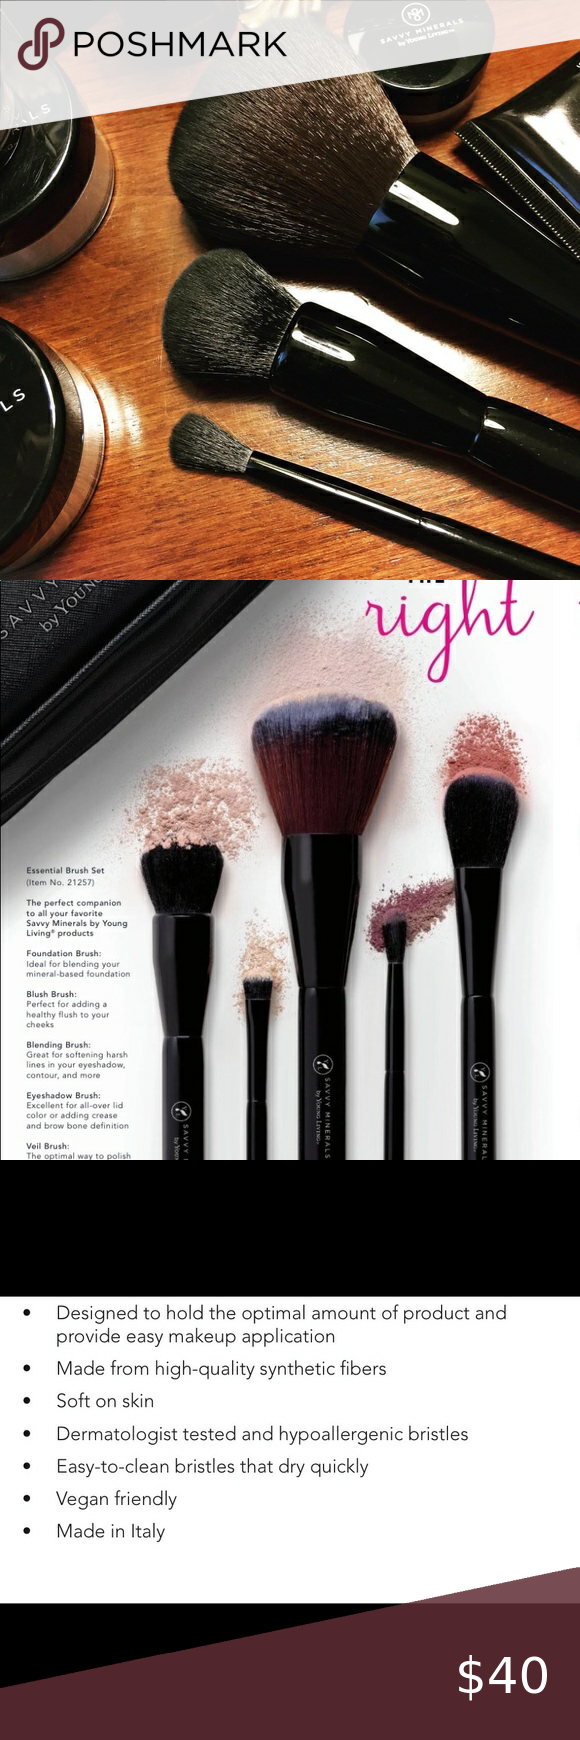 HIGHEST QUALITY MAKEUP BRUSHES NEW AND SEALED in 2020